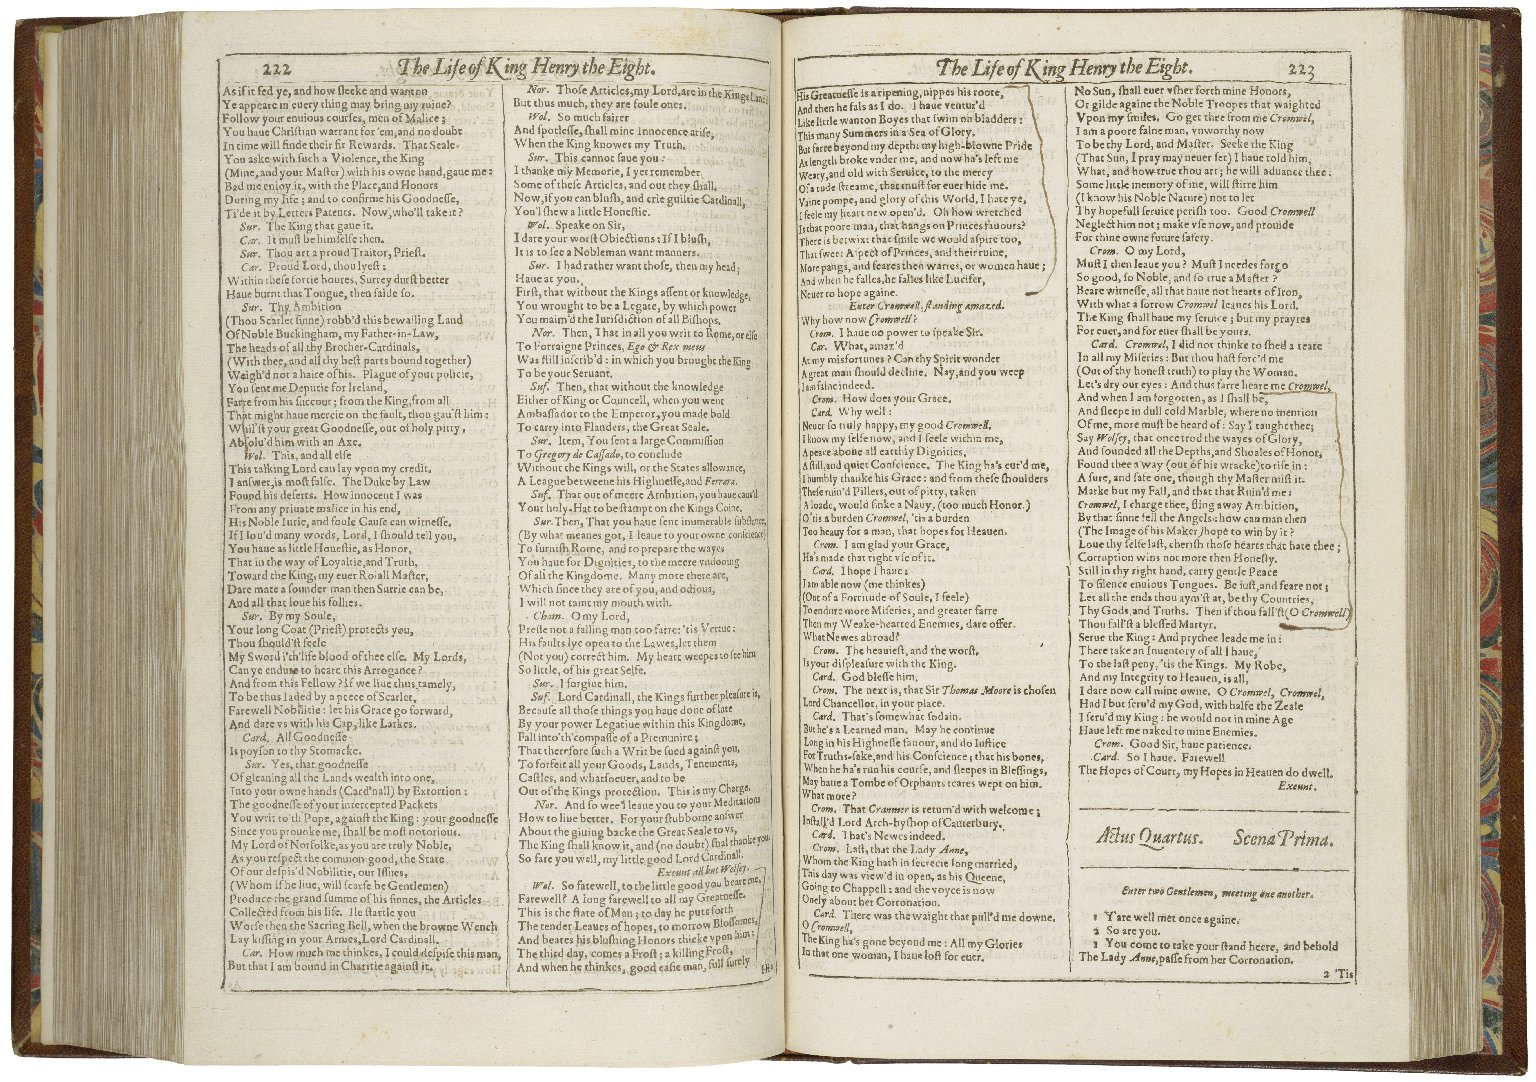 [Works. 1623] Mr. William Shakespeares comedies, histories, & tragedies : published according to the true originall copies.